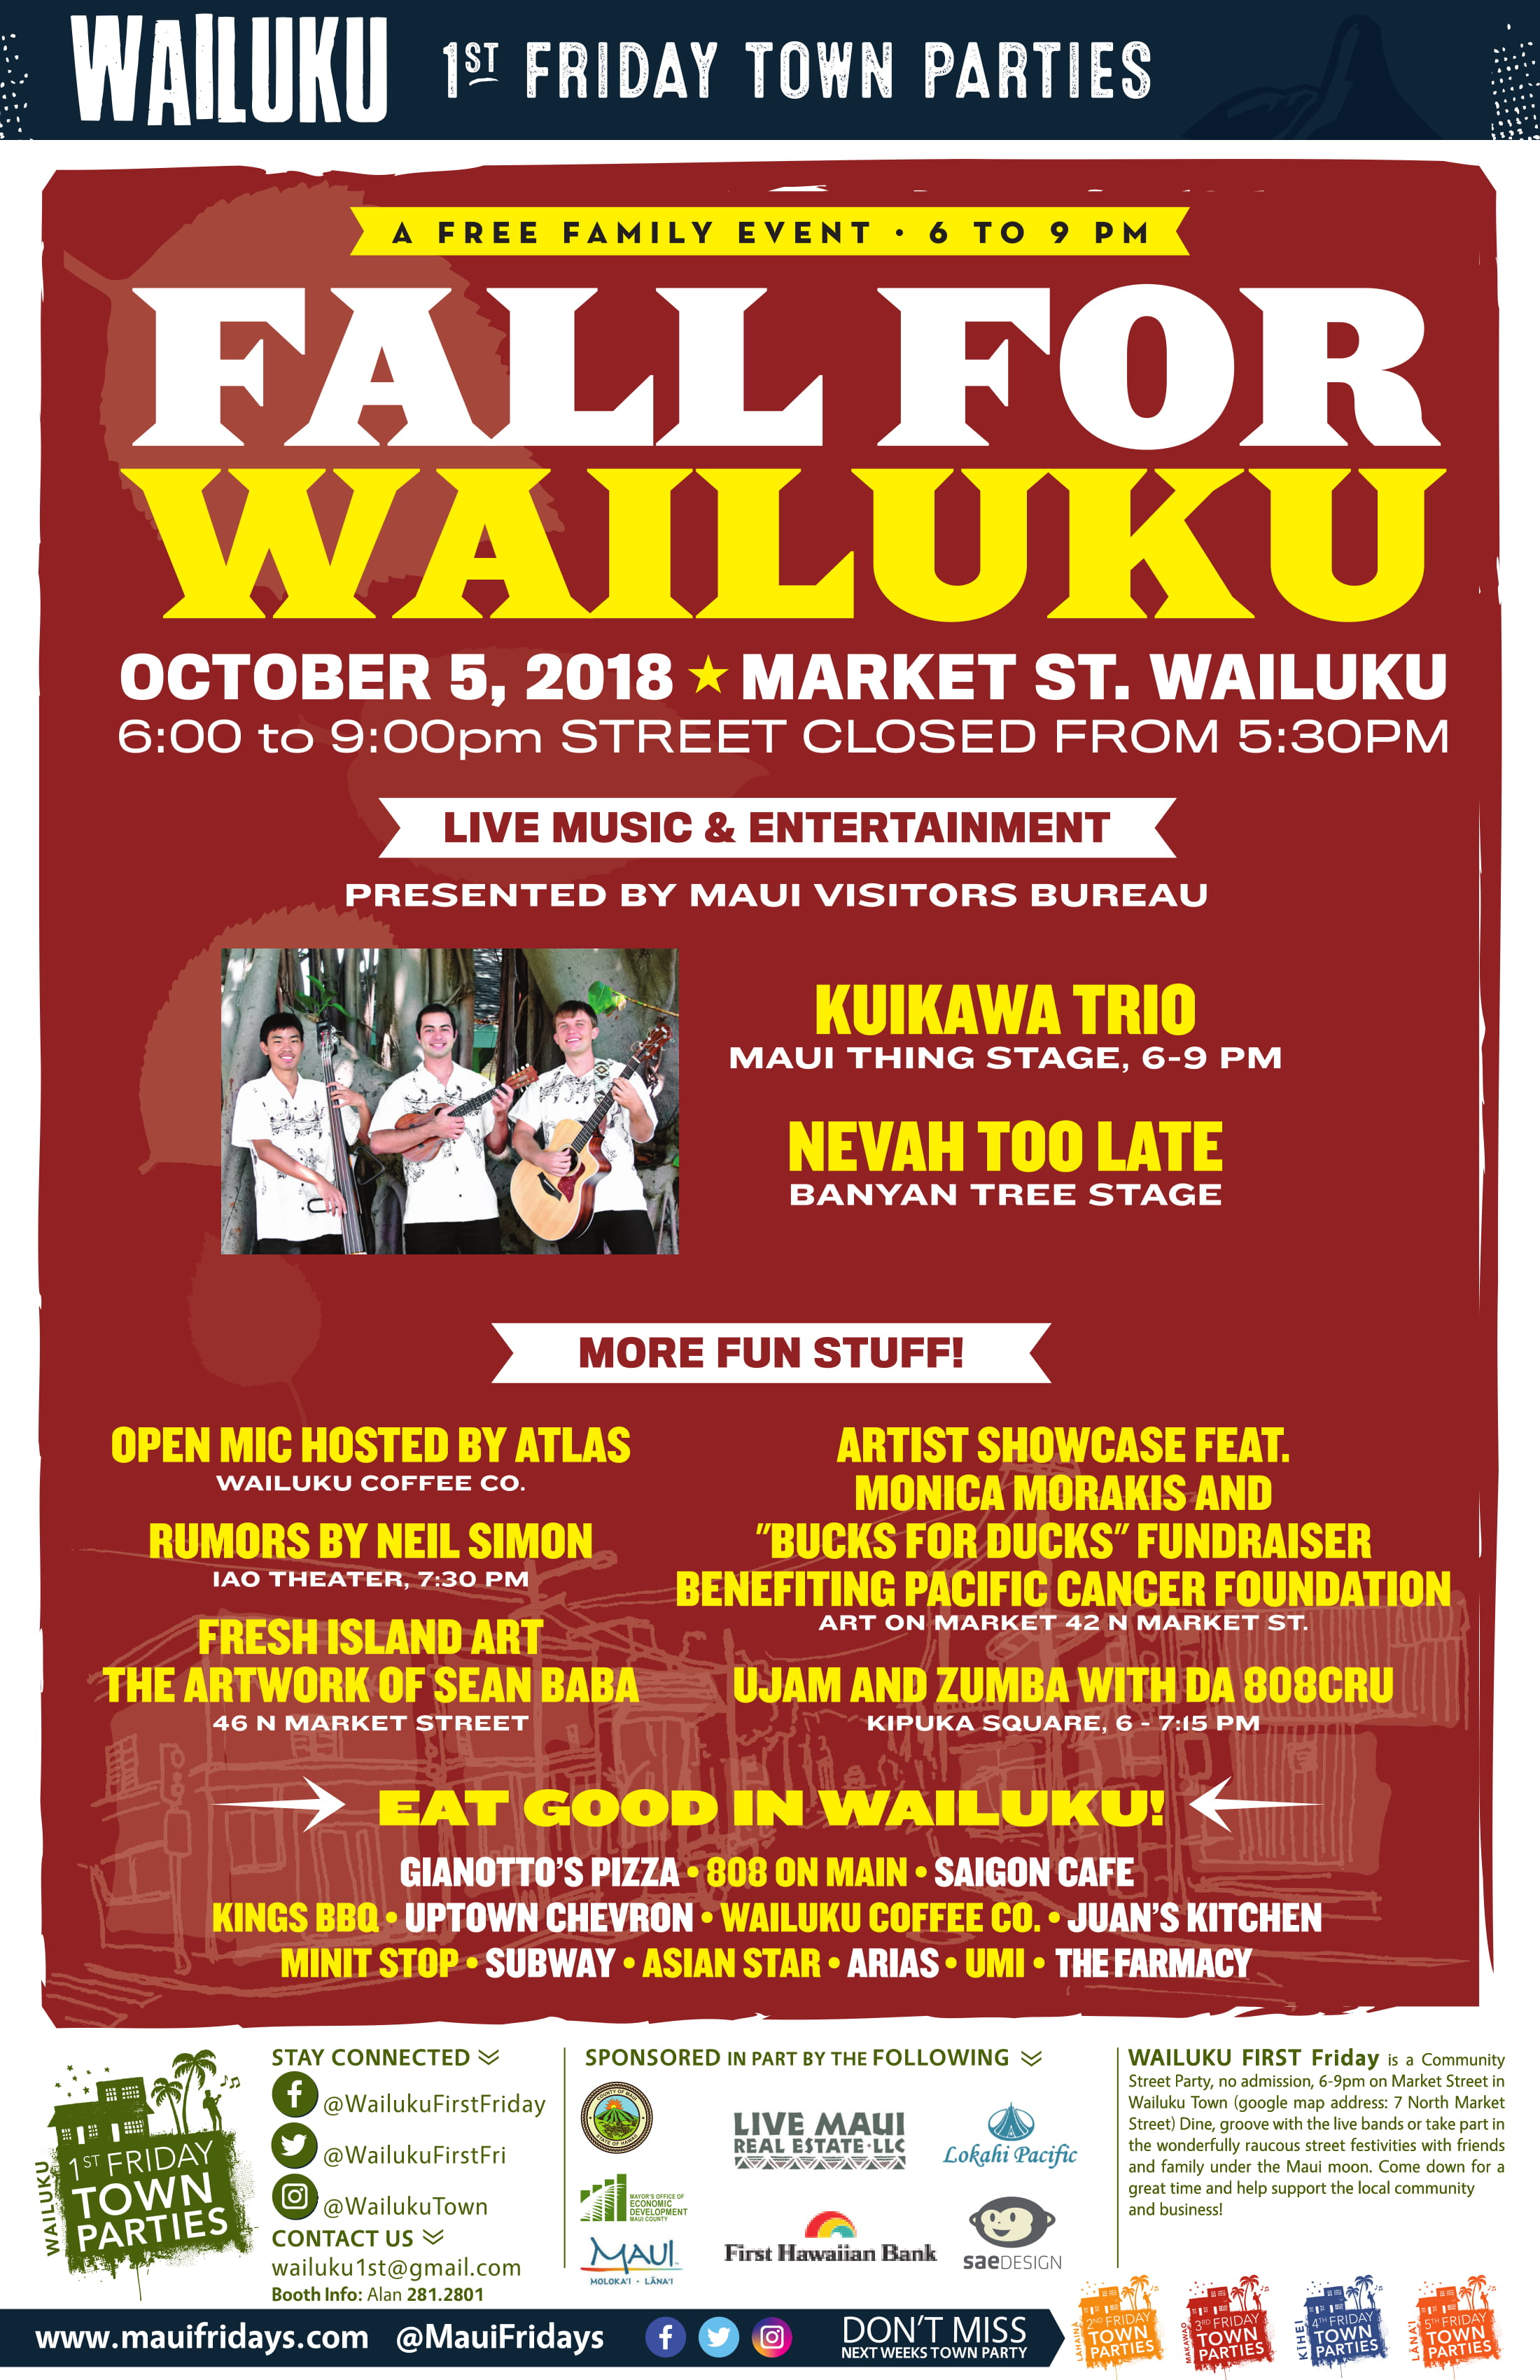 Wailuku First Friday Performers Announced